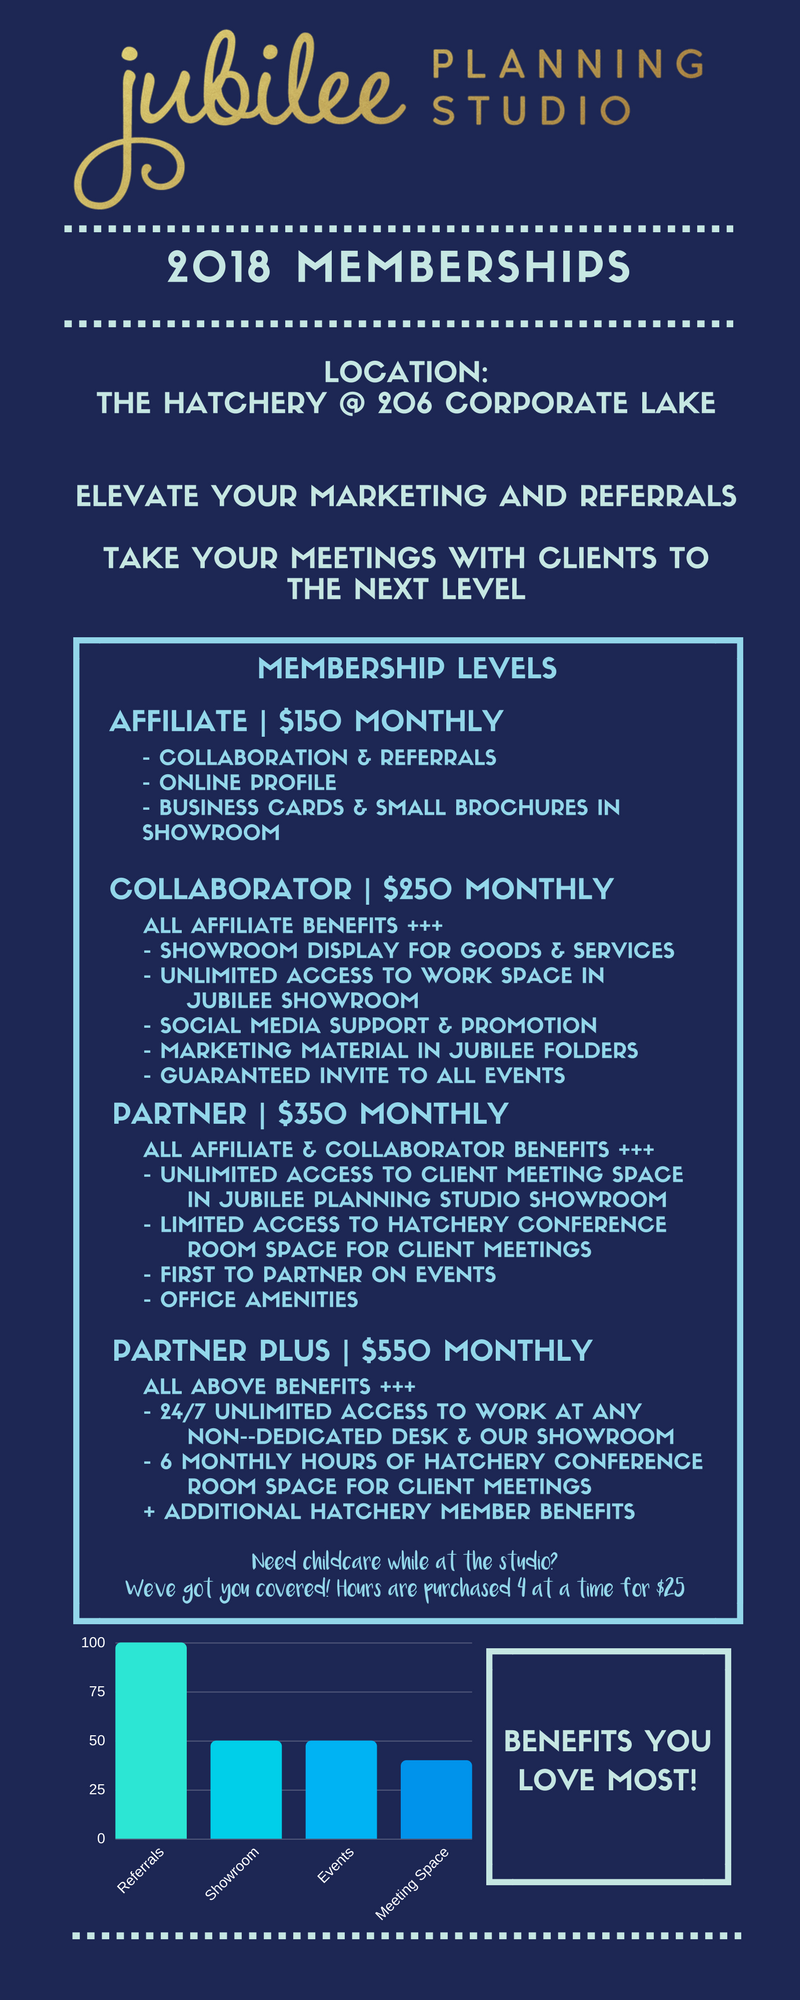 JPS 2018 Memberships (6).png